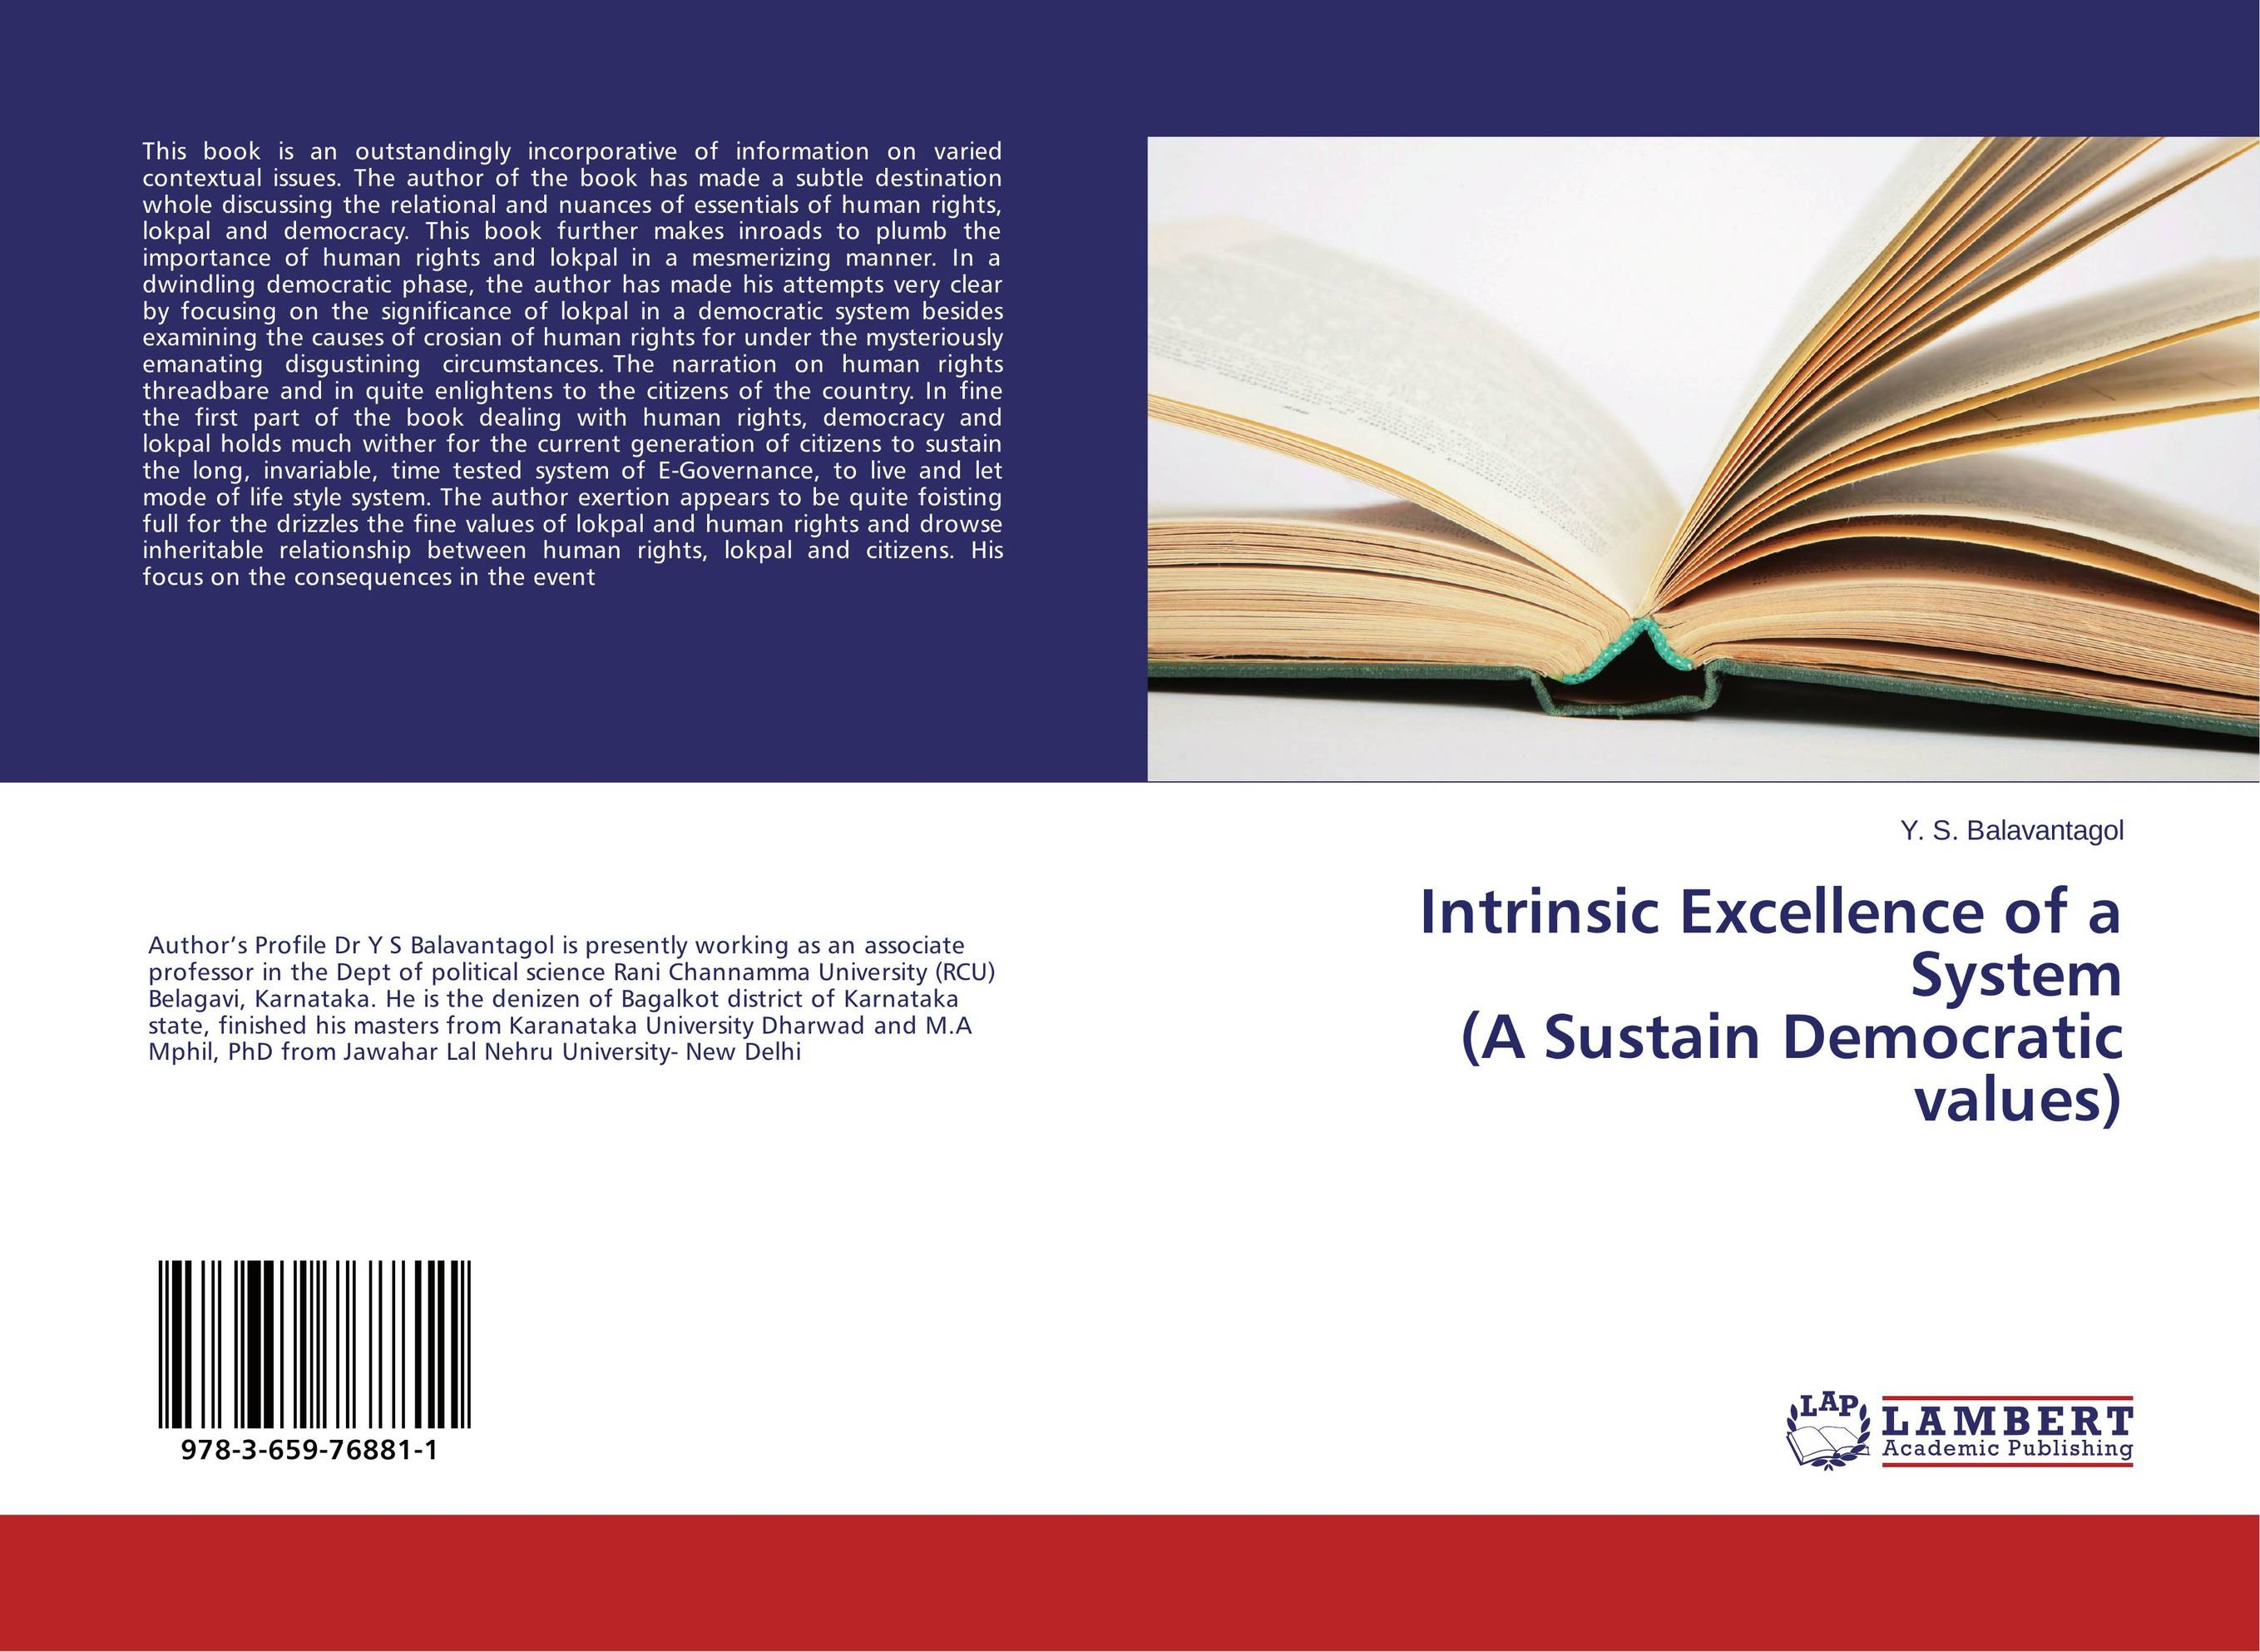 Intrinsic Excellence of a System (A Sustain Democratic values) victims stories and the advancement of human rights